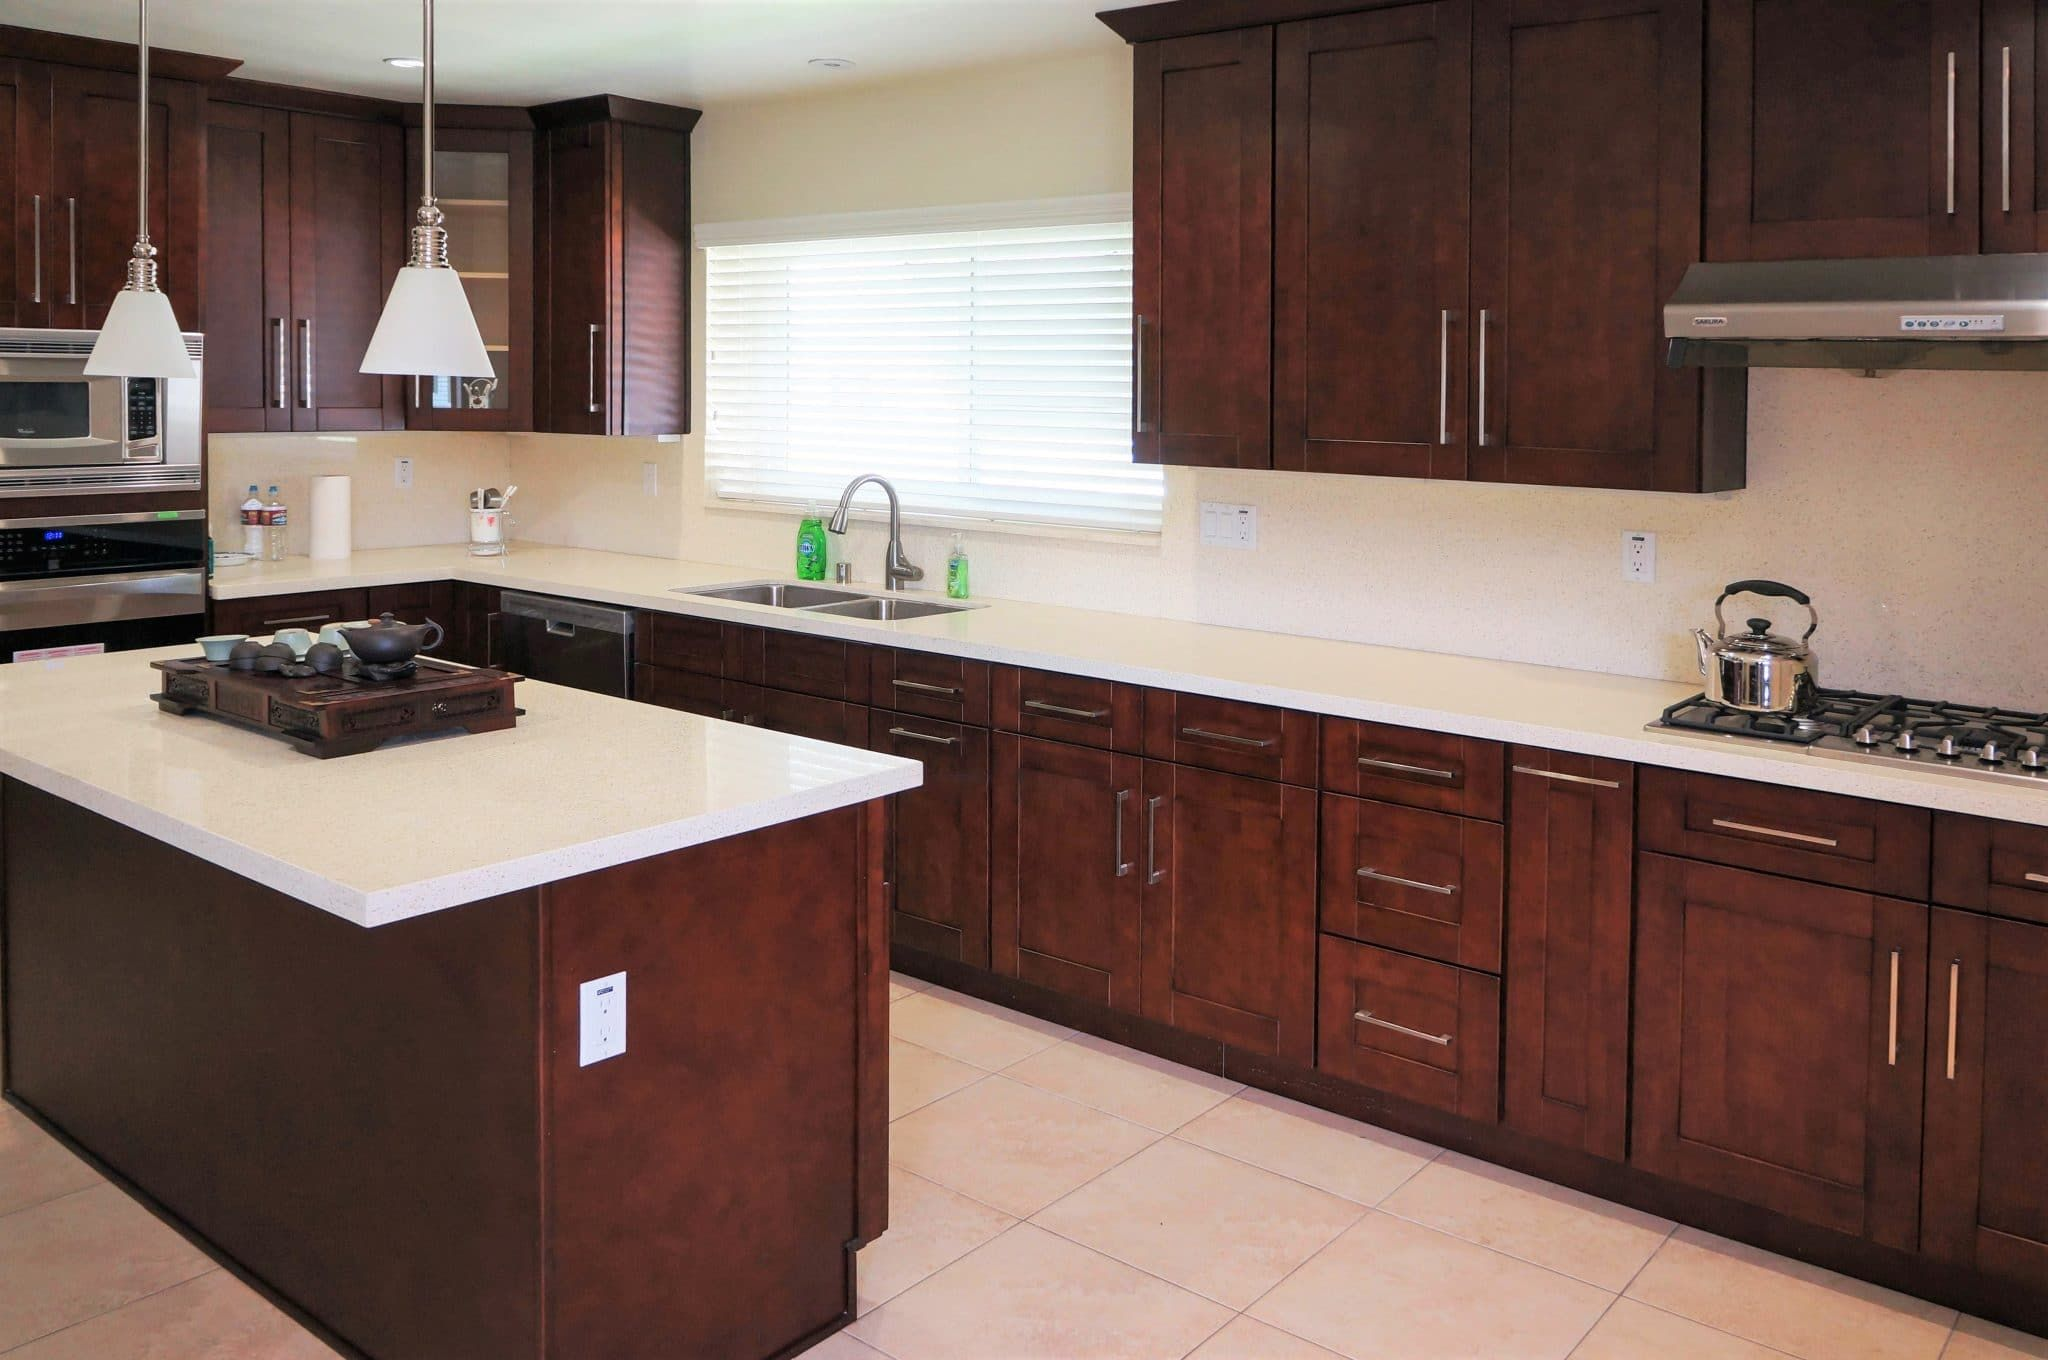 Why Cherry Wood Endures Best Online Cabinets Cherry Wood Kitchens Mahogany Kitchen Cherry Wood Kitchen Cabinets